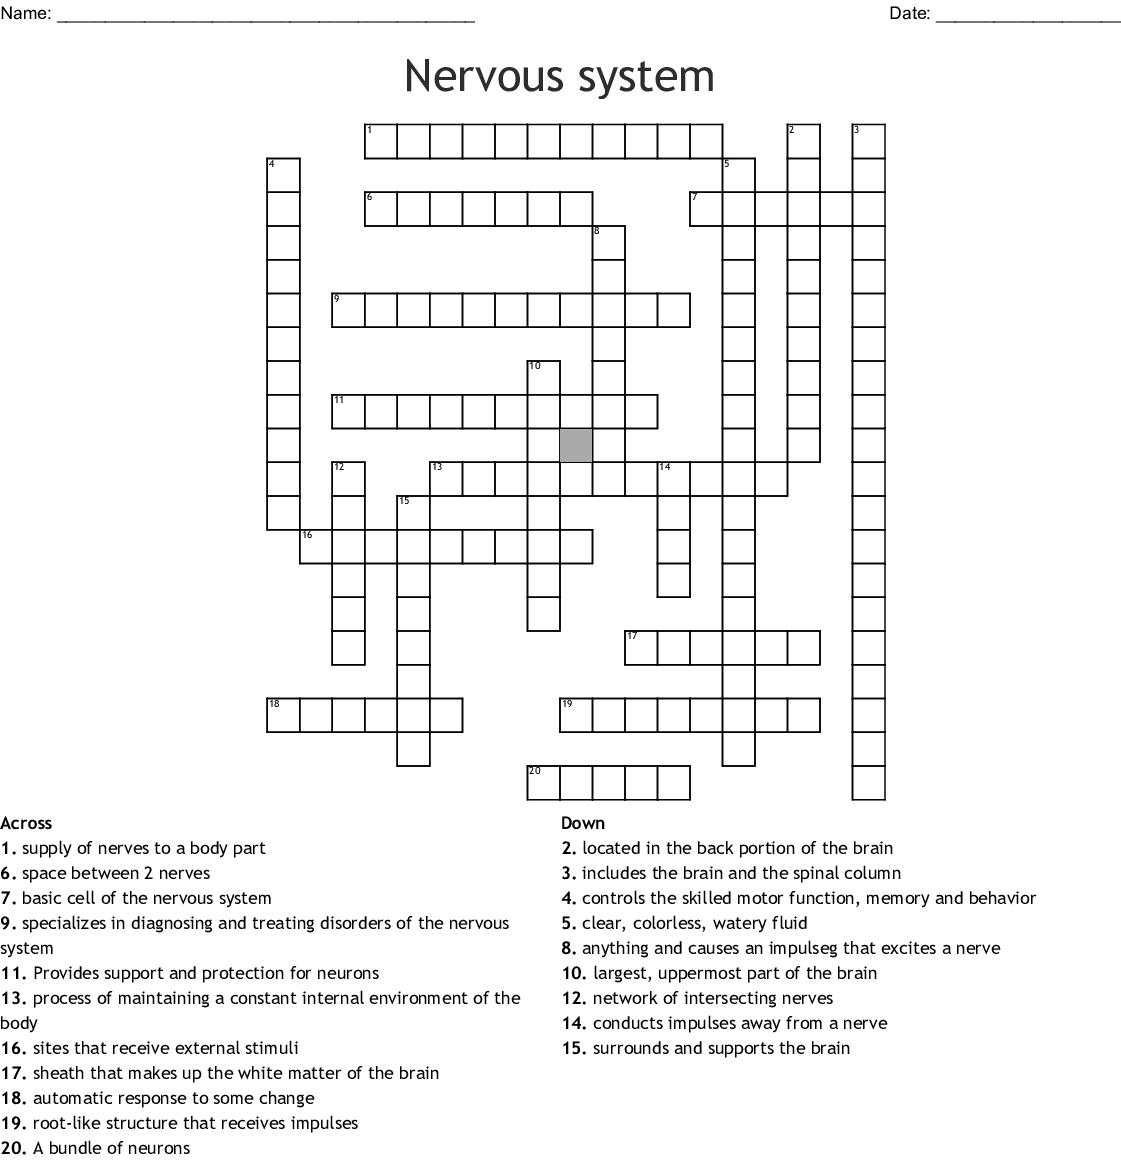 Nervous System Word Search